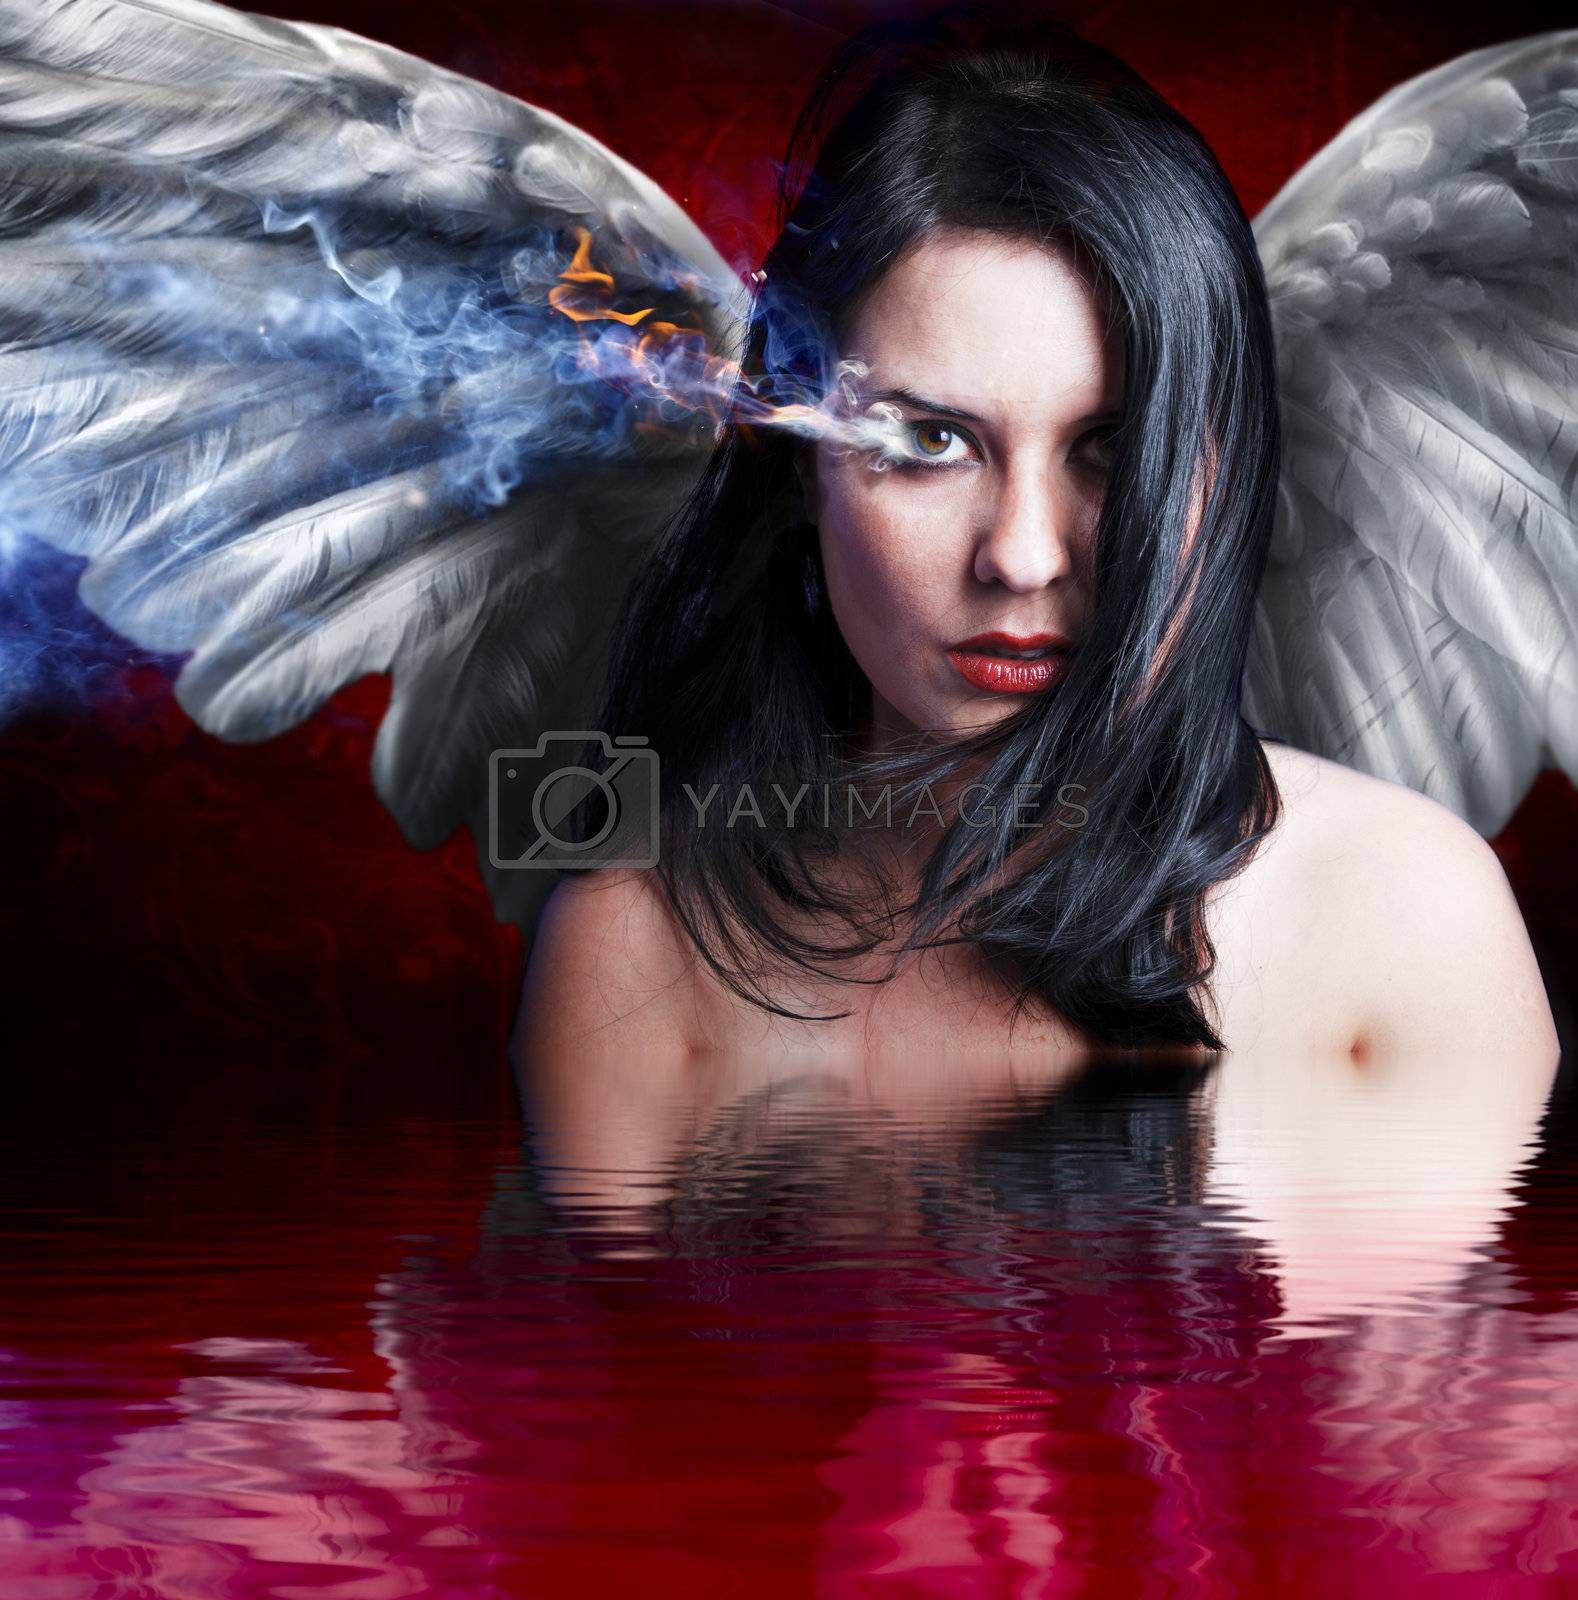 Angel angry, girl with burning eye over blood water reflection